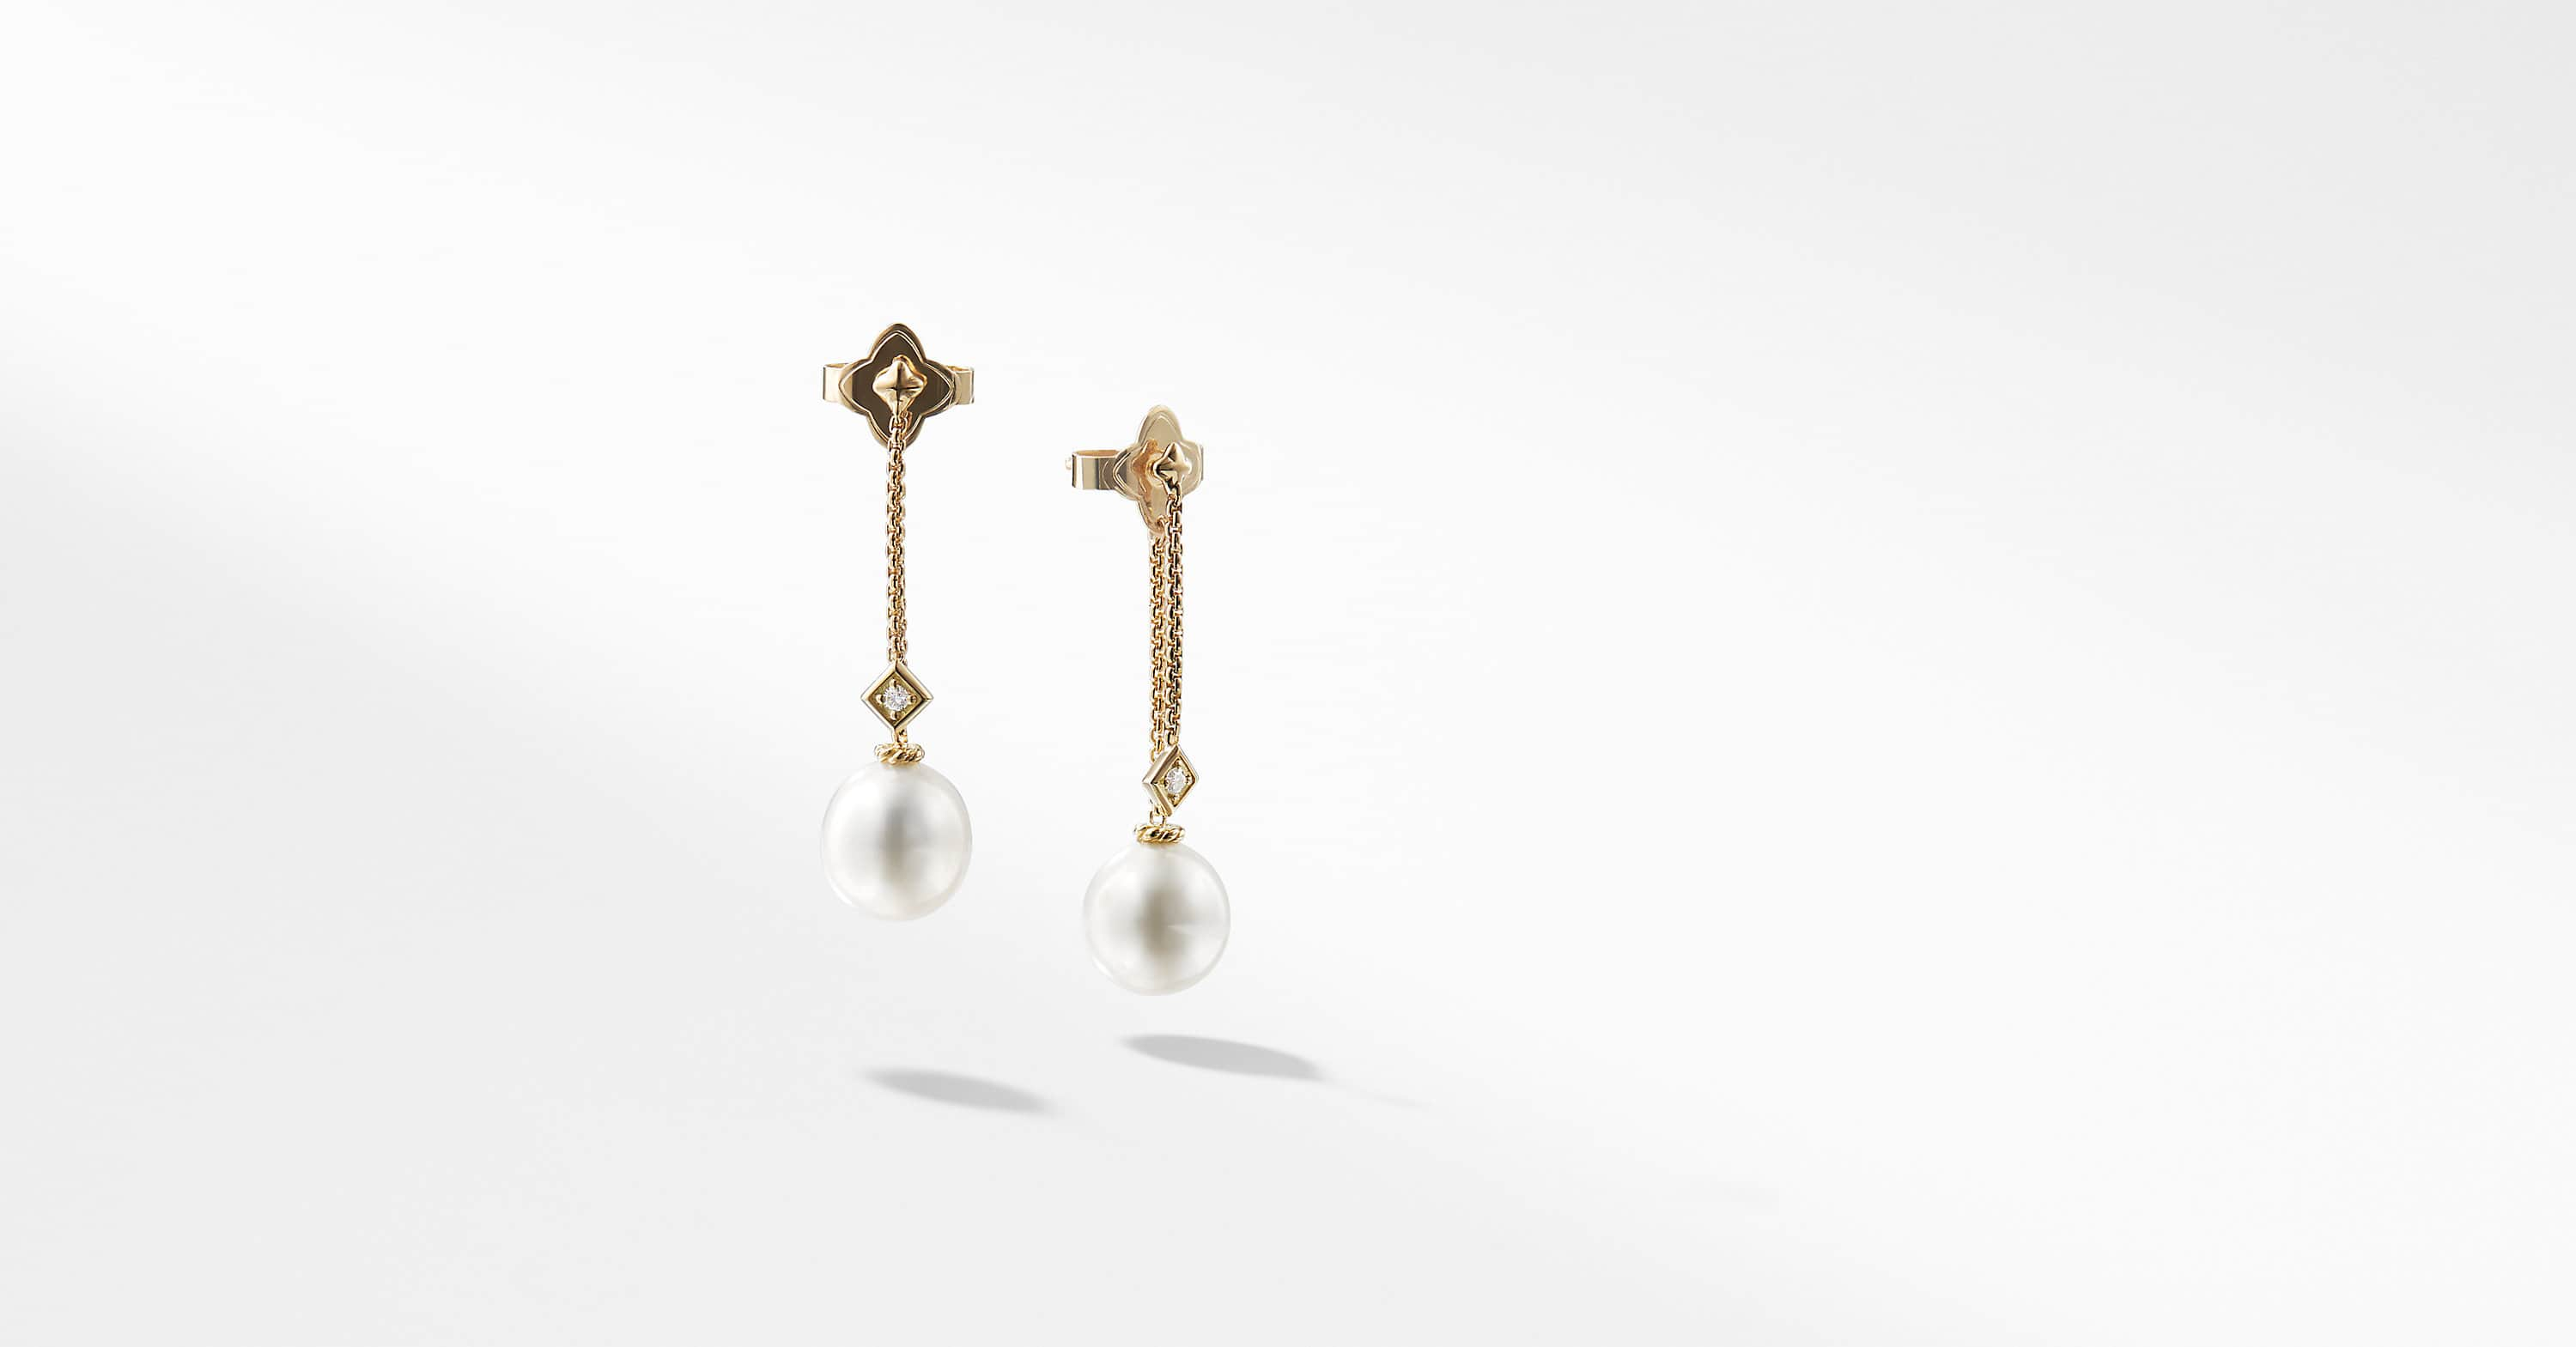 Solari Drop Earrings with Diamonds in 18k Gold